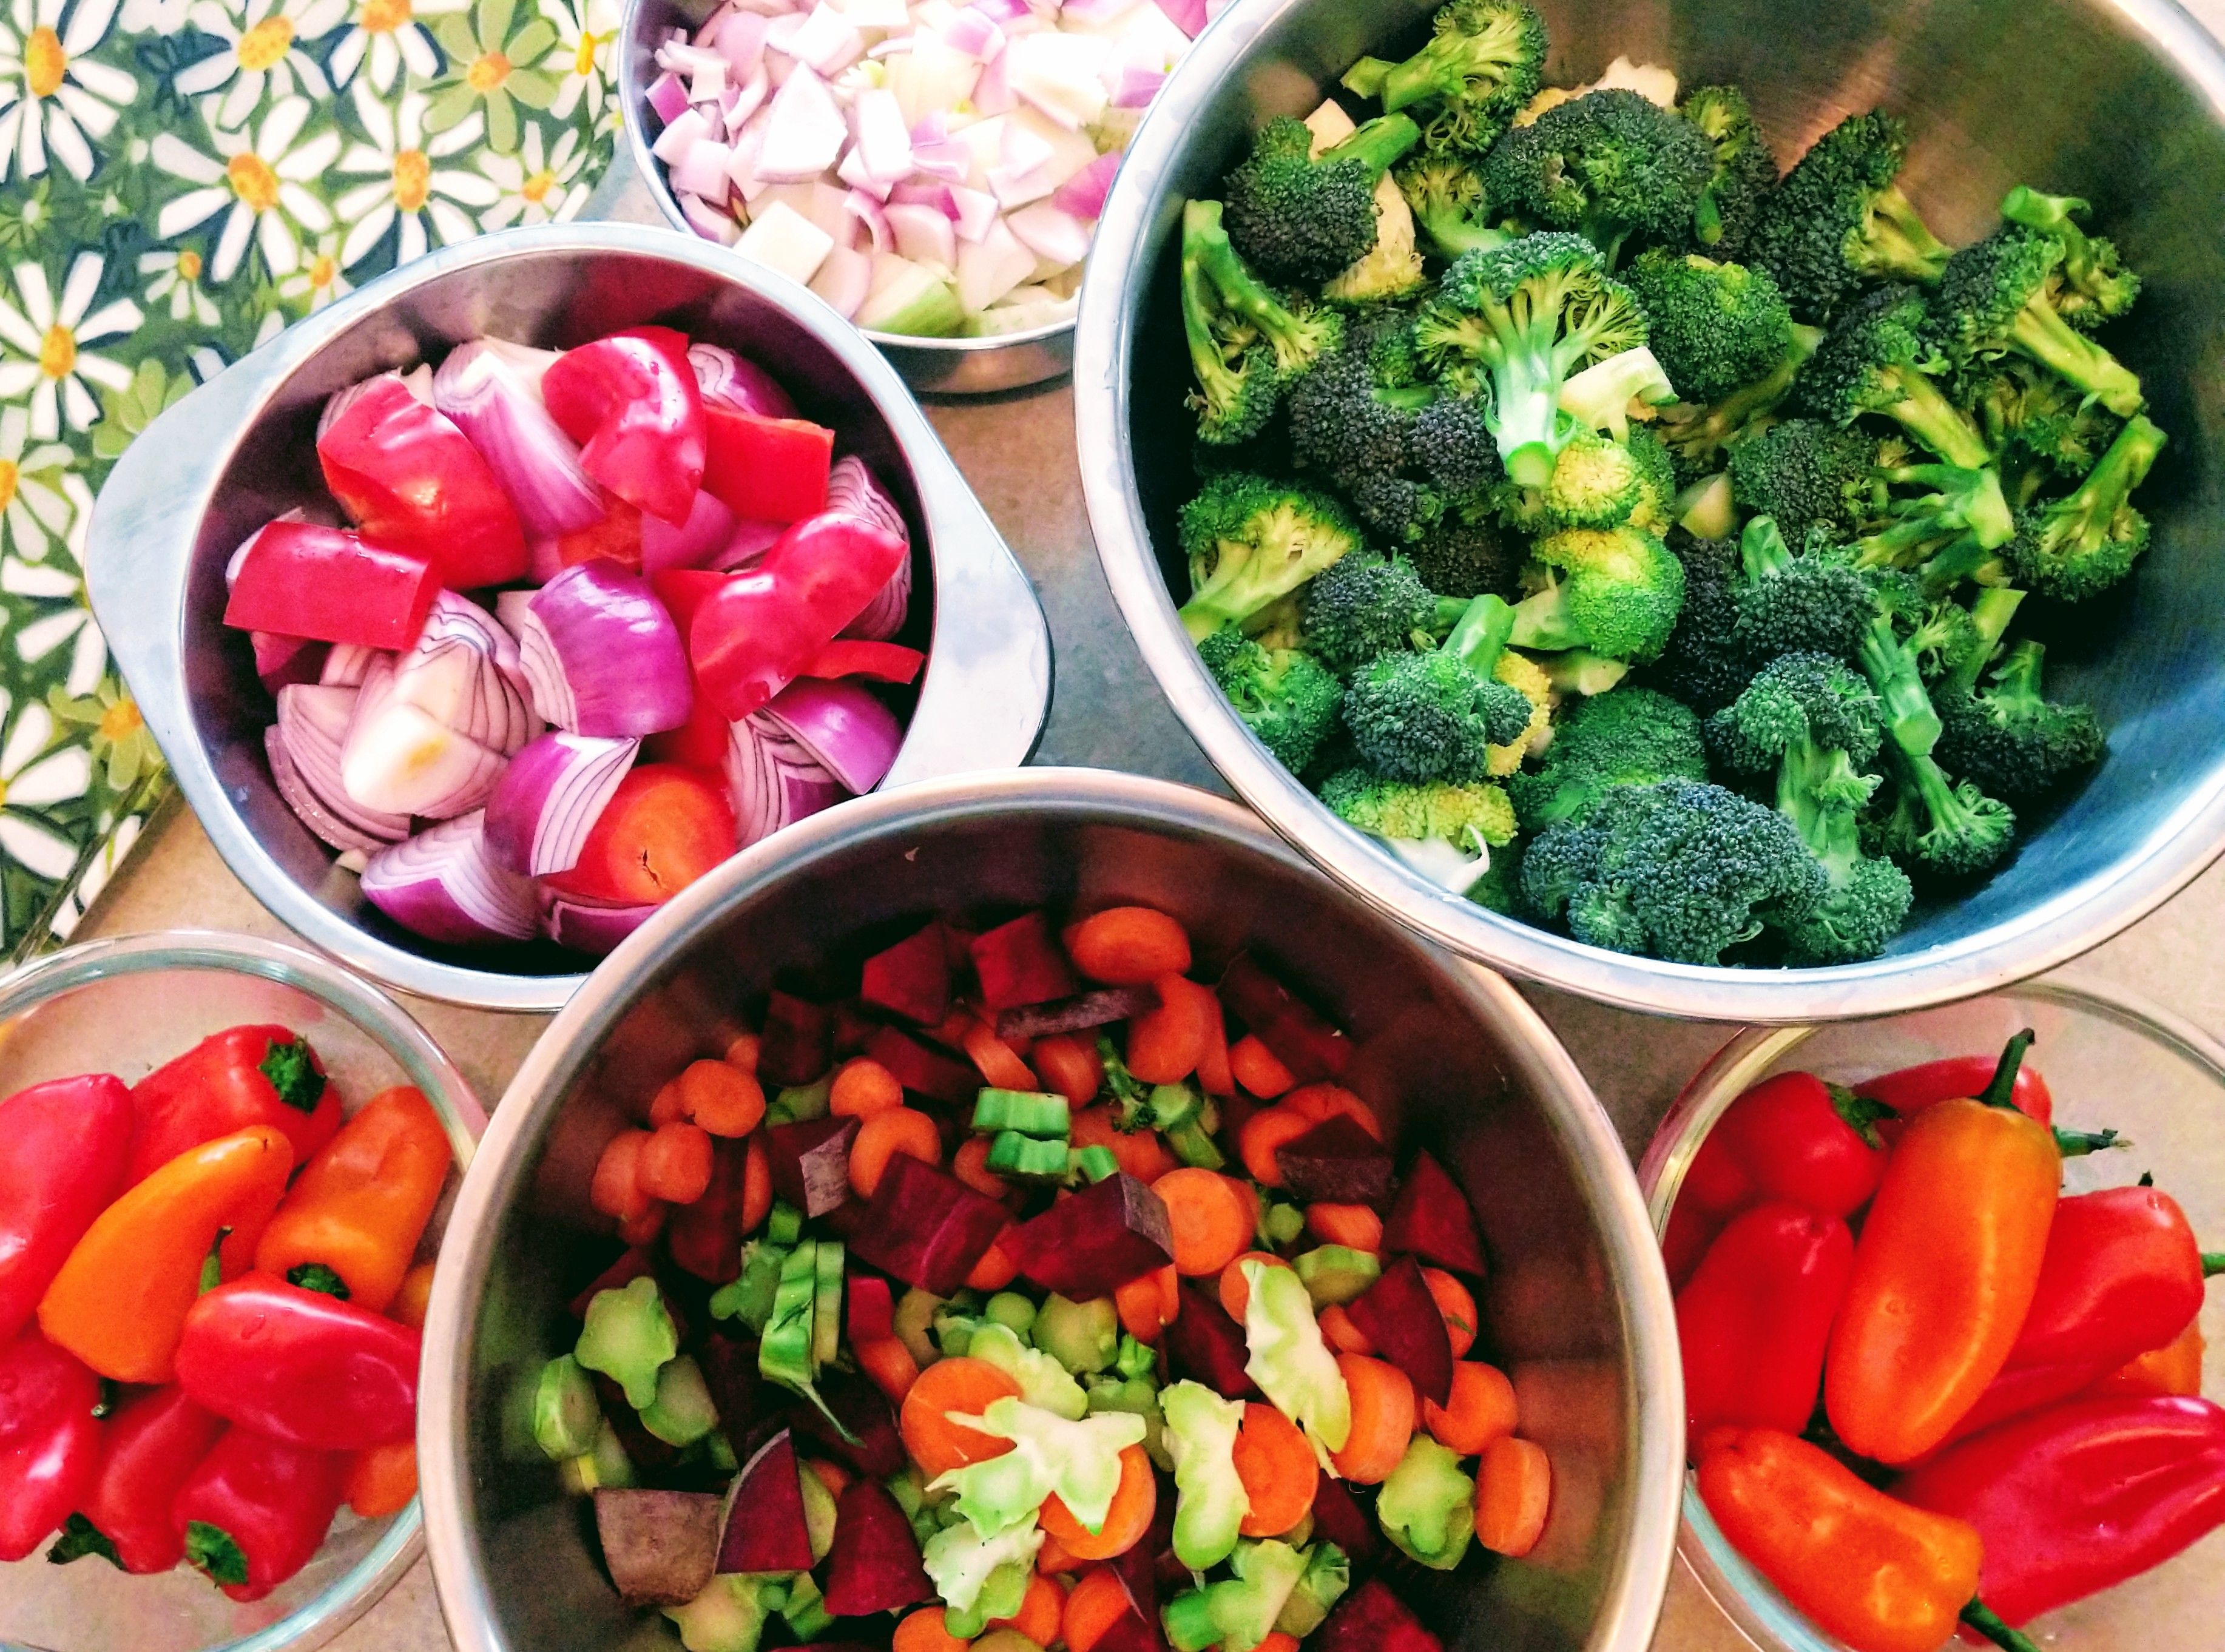 Glass and stainless steel bowls filled with fresh produce, including broccoli, red onions, carrots, beets, and sweet peppers.